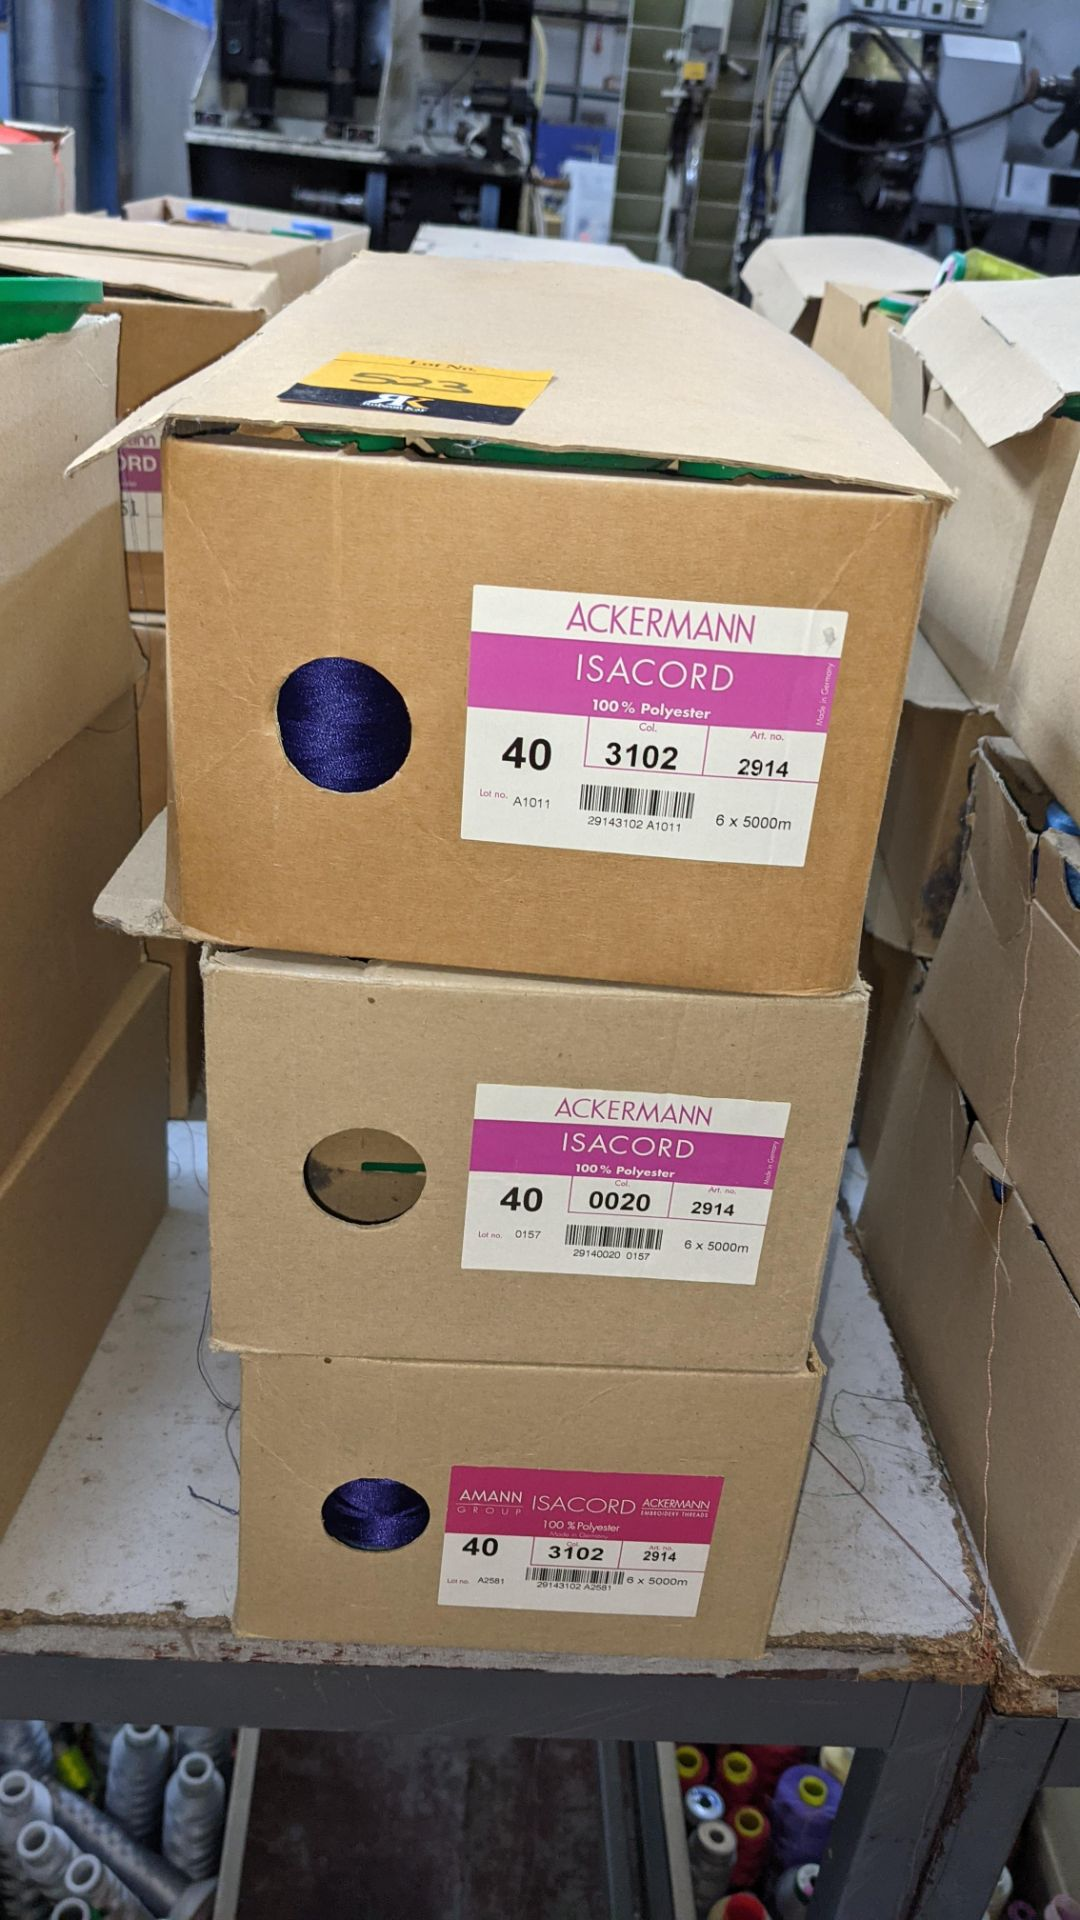 12 boxes of Ackermann Isacord (40) polyester thread - Image 3 of 9